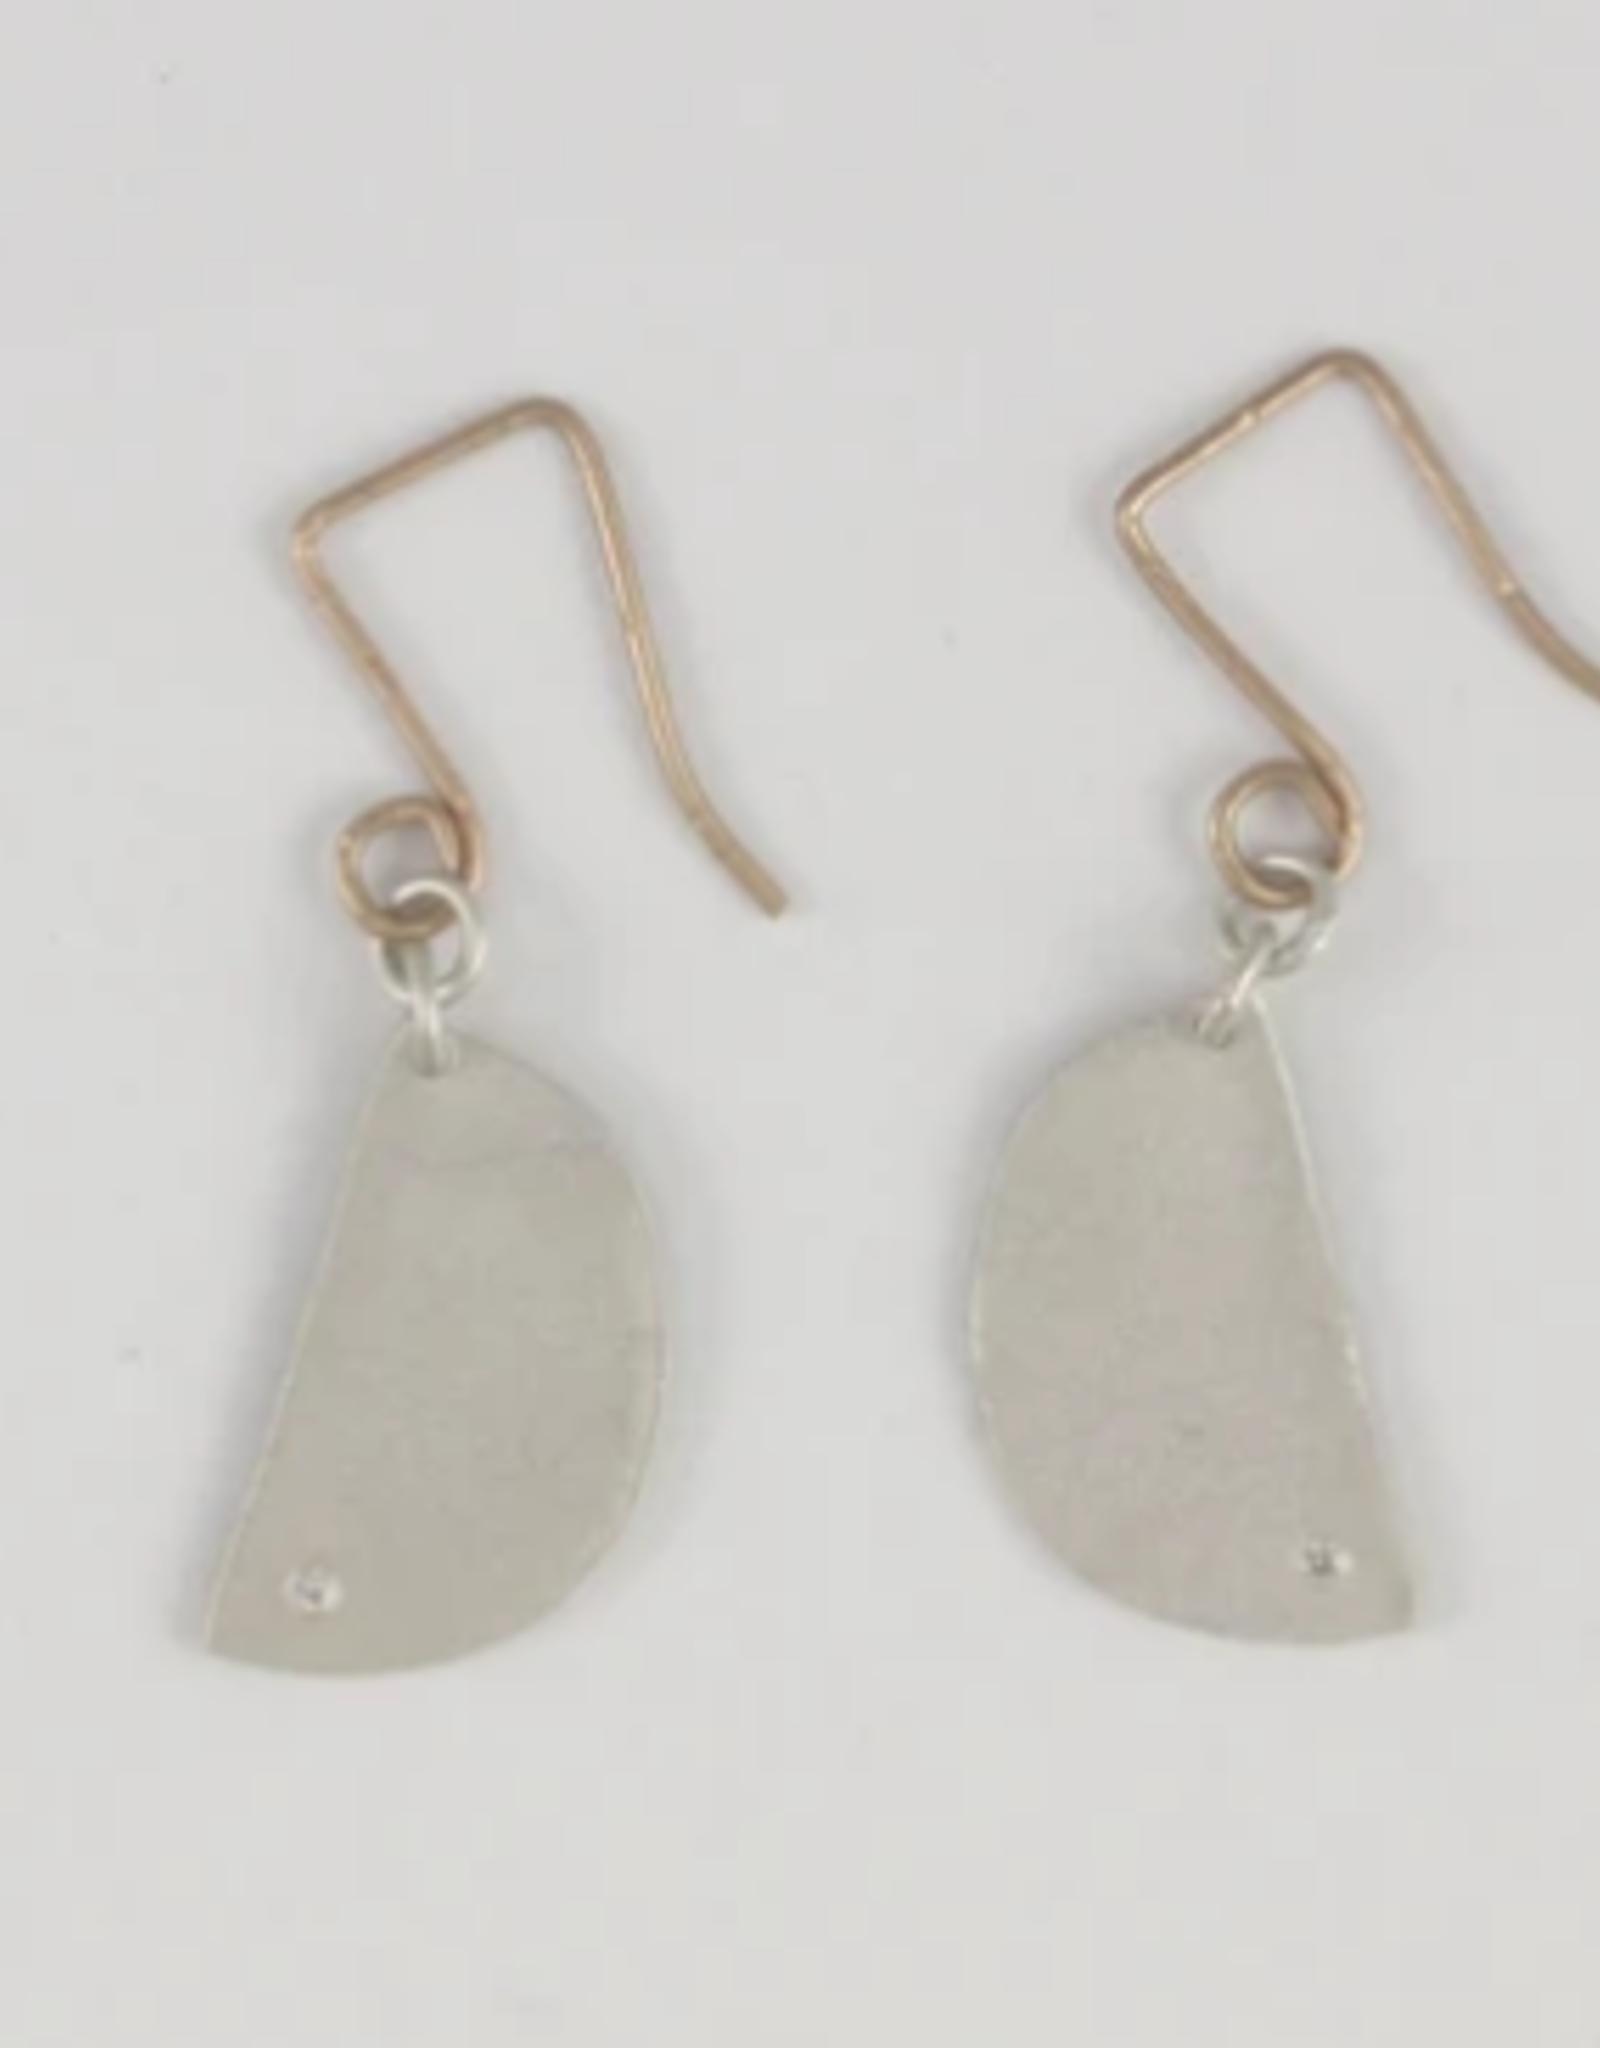 SAUNDRA MESSINGER EARRINGS SMALL HALF LUNA ON WIRES W/ DIAM